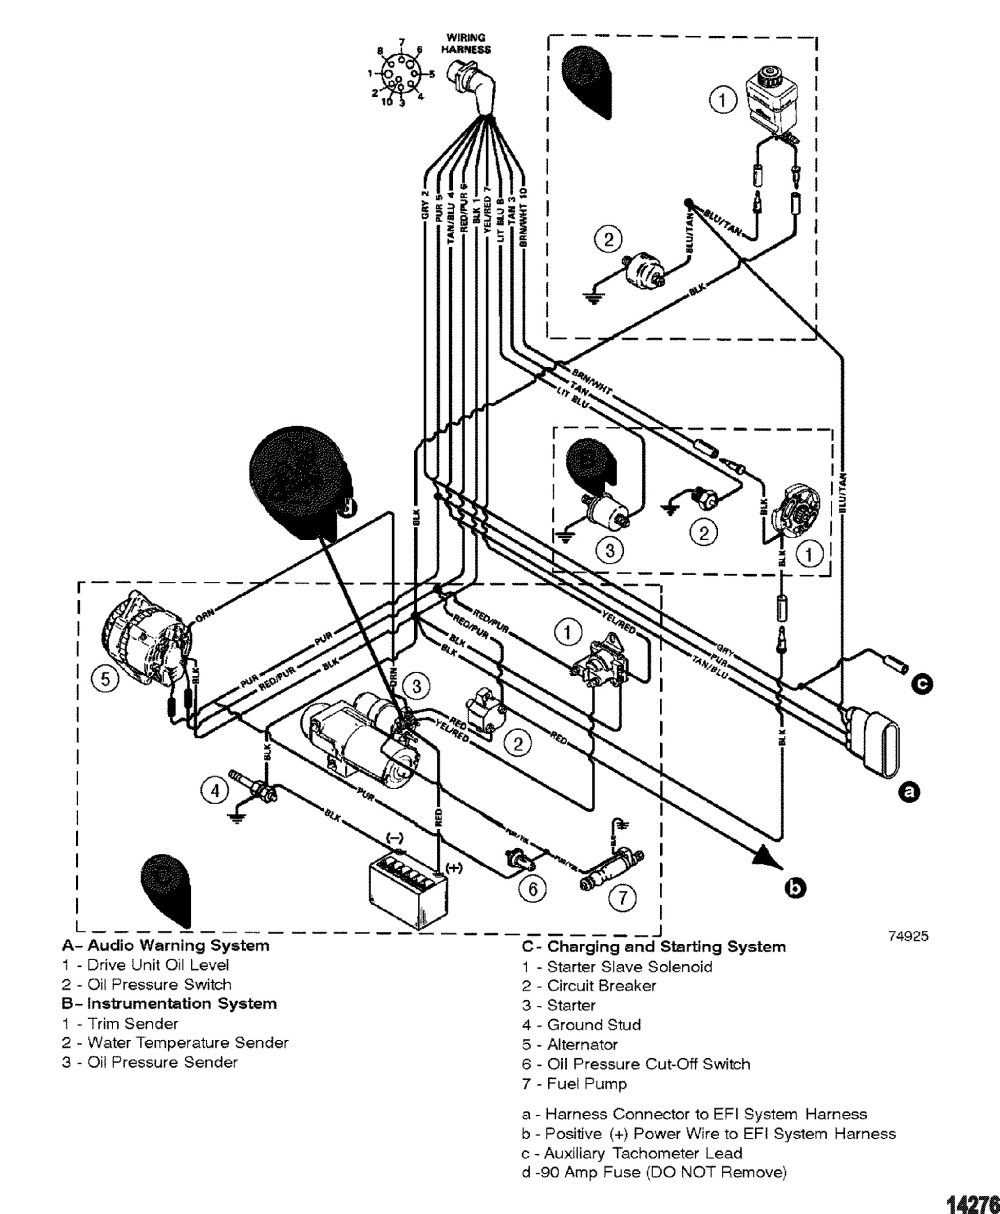 medium resolution of mercruiser wiring harness diagram wiring diagrams scematic rh 77 jessicadonath de mercruiser starter wiring diagram mercruiser cooling system diagram